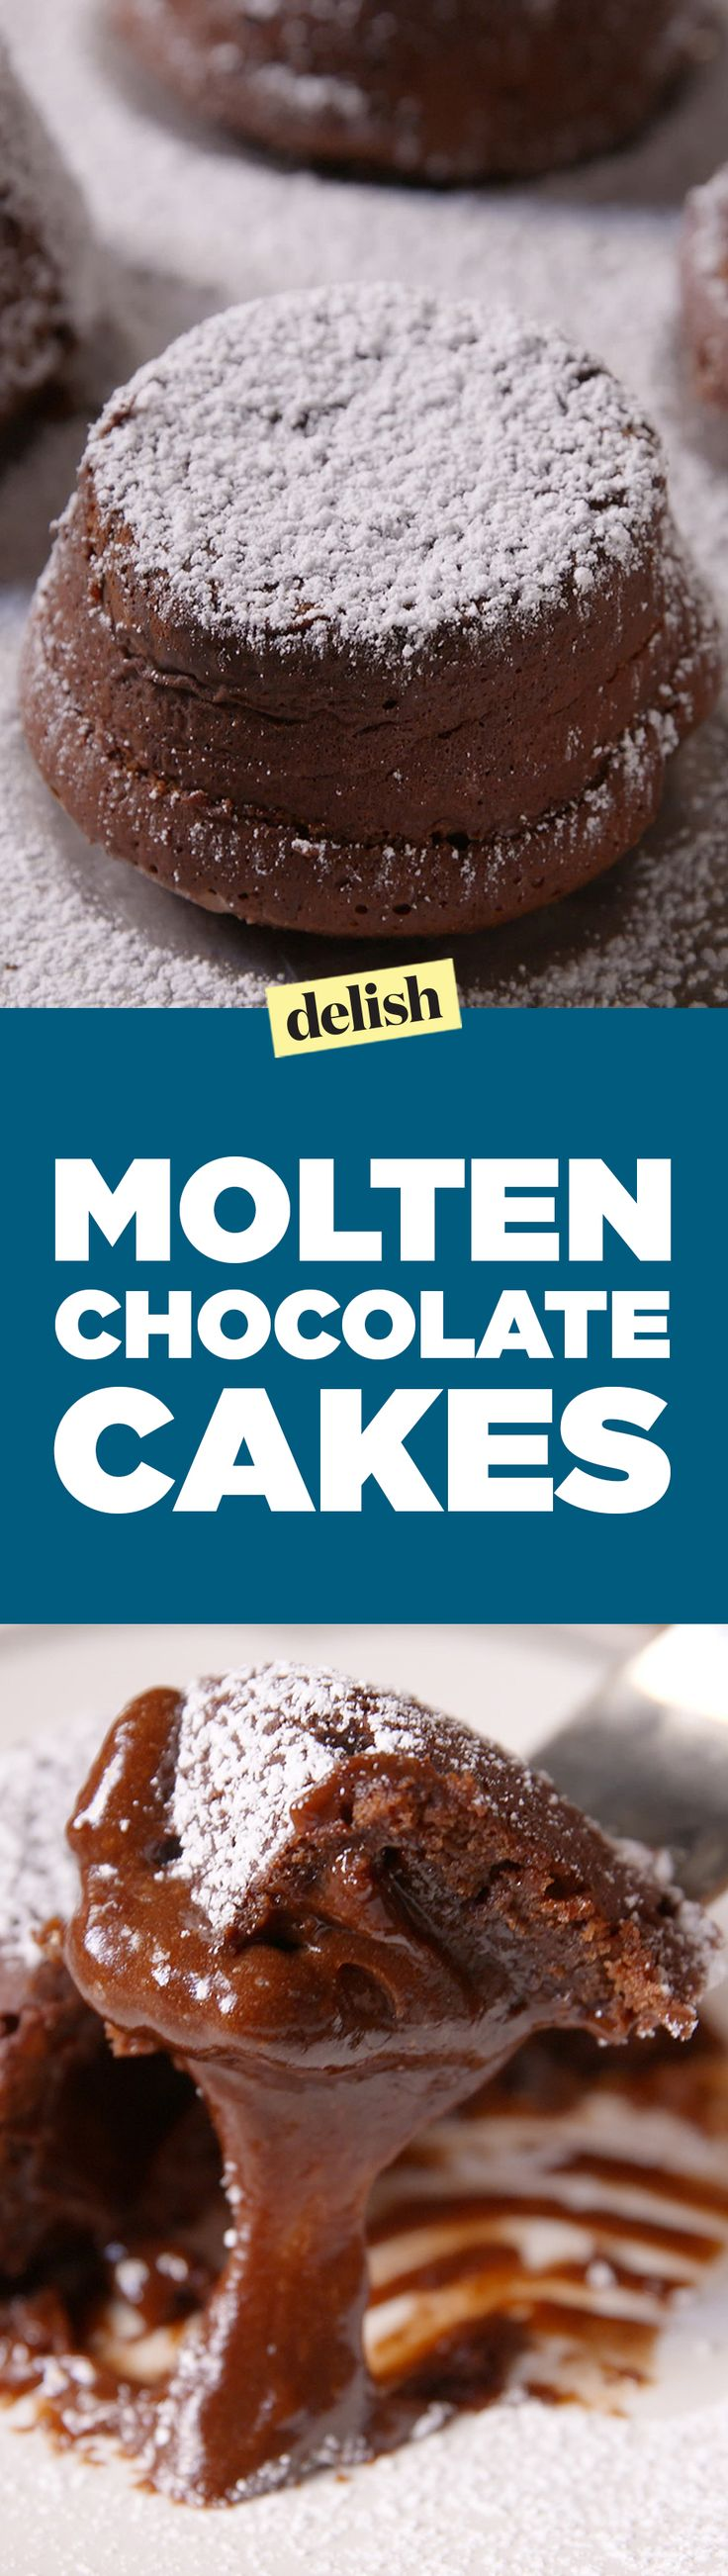 These Molten Chocolate Cakes breaking open is the most satisfying thing you'll ever watch. Get the recipe on Delish.com.